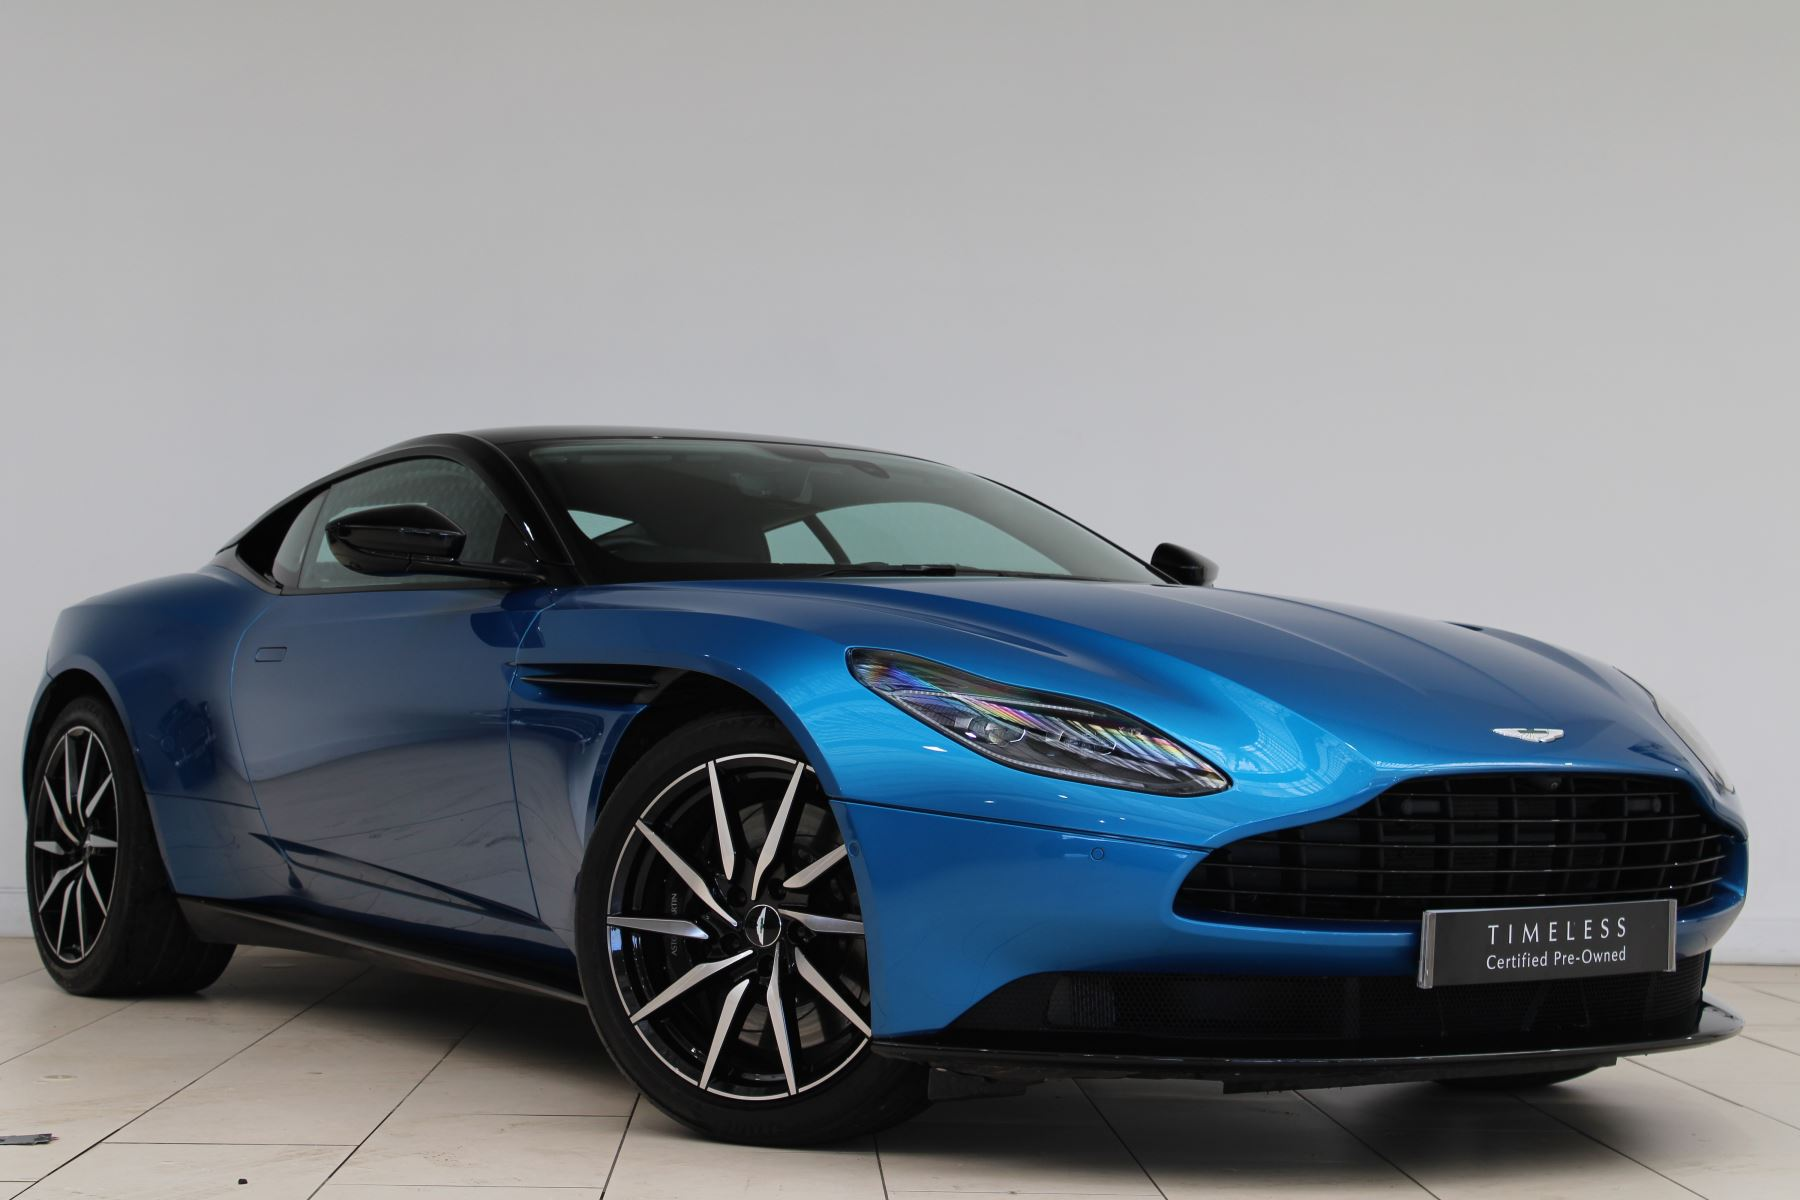 Aston Martin DB11 V8 2dr Touchtronic 4.0 Automatic Coupe